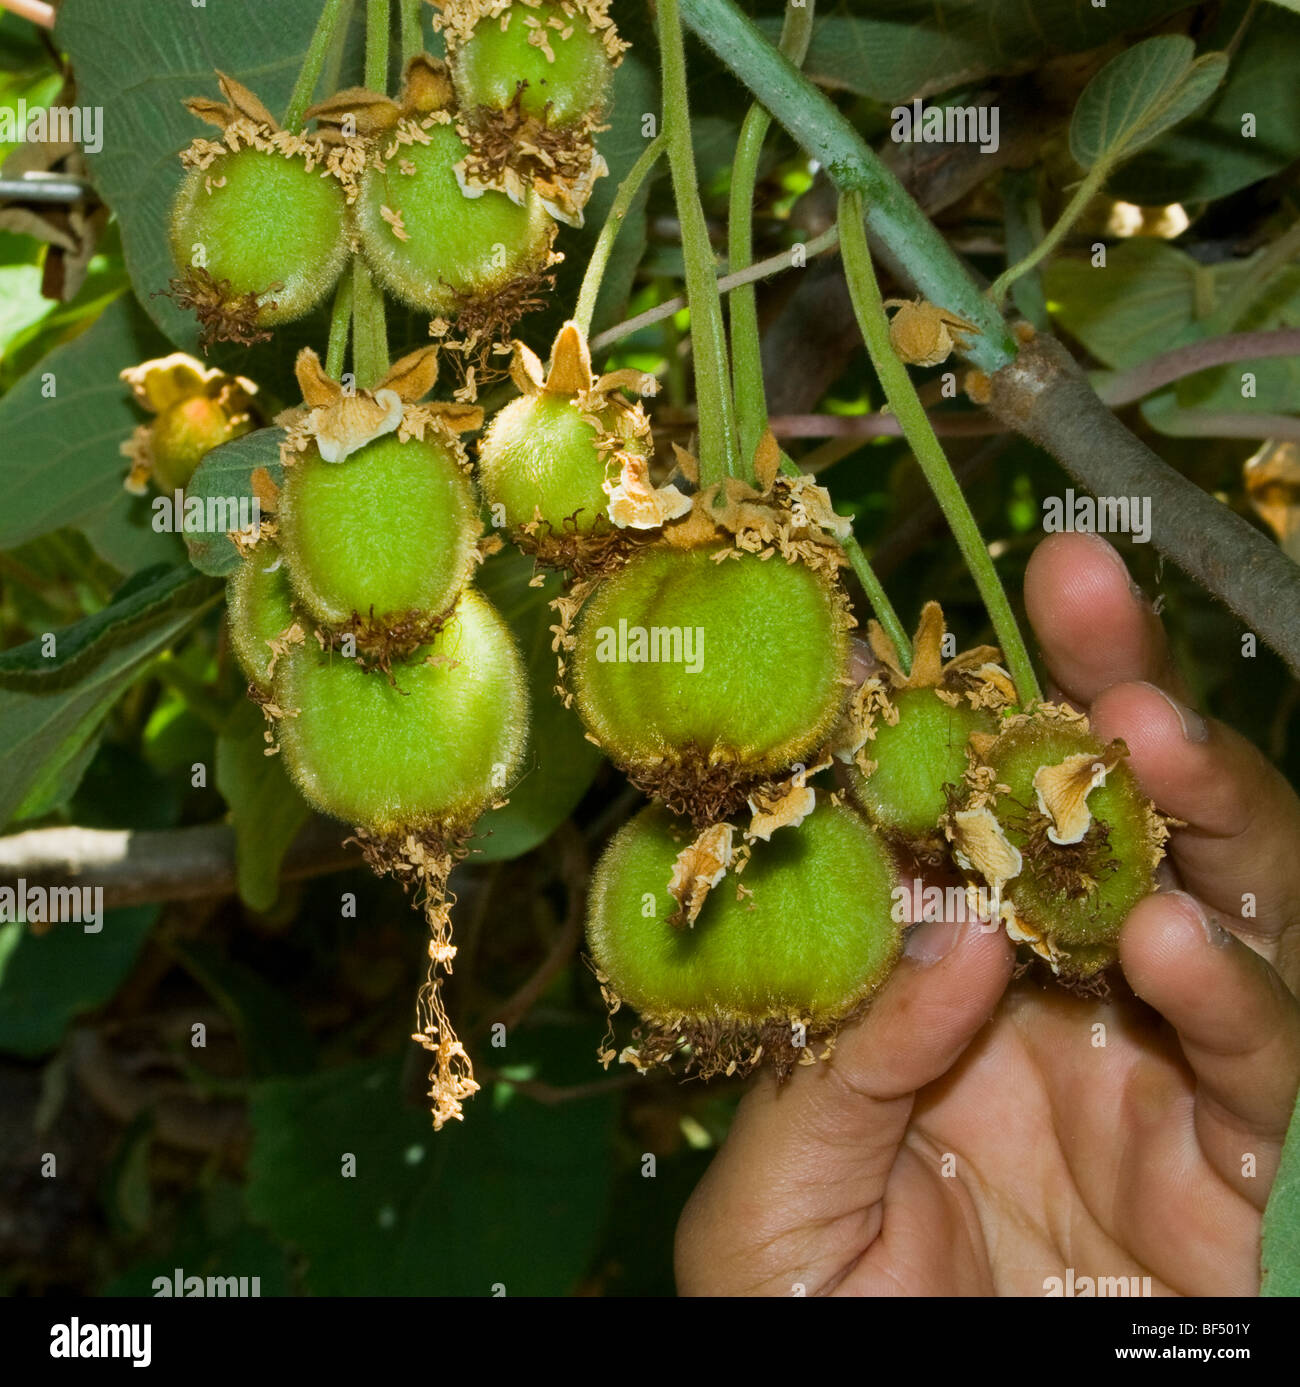 Agriculture - A growers hand with a cluster of immature kiwifruit / Gridley, California, USA. - Stock Image